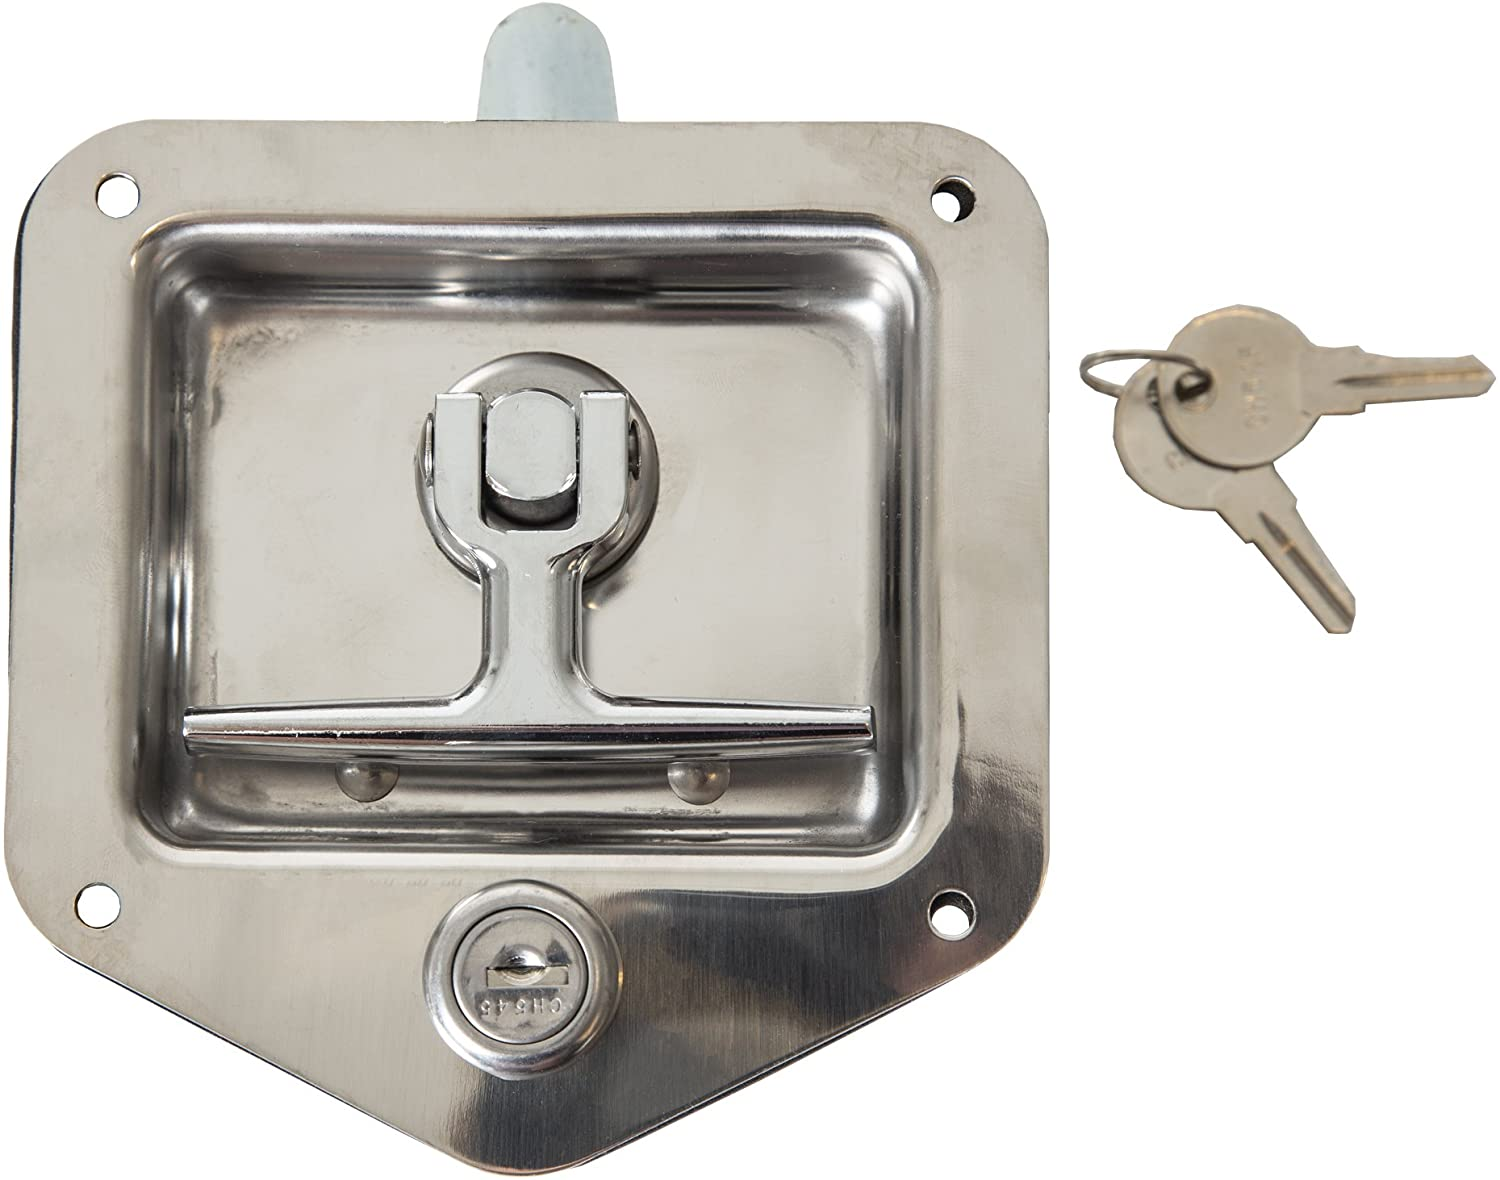 Blodgett 51488 Catch Assy,Latch Commercial Ovens Industrial ...